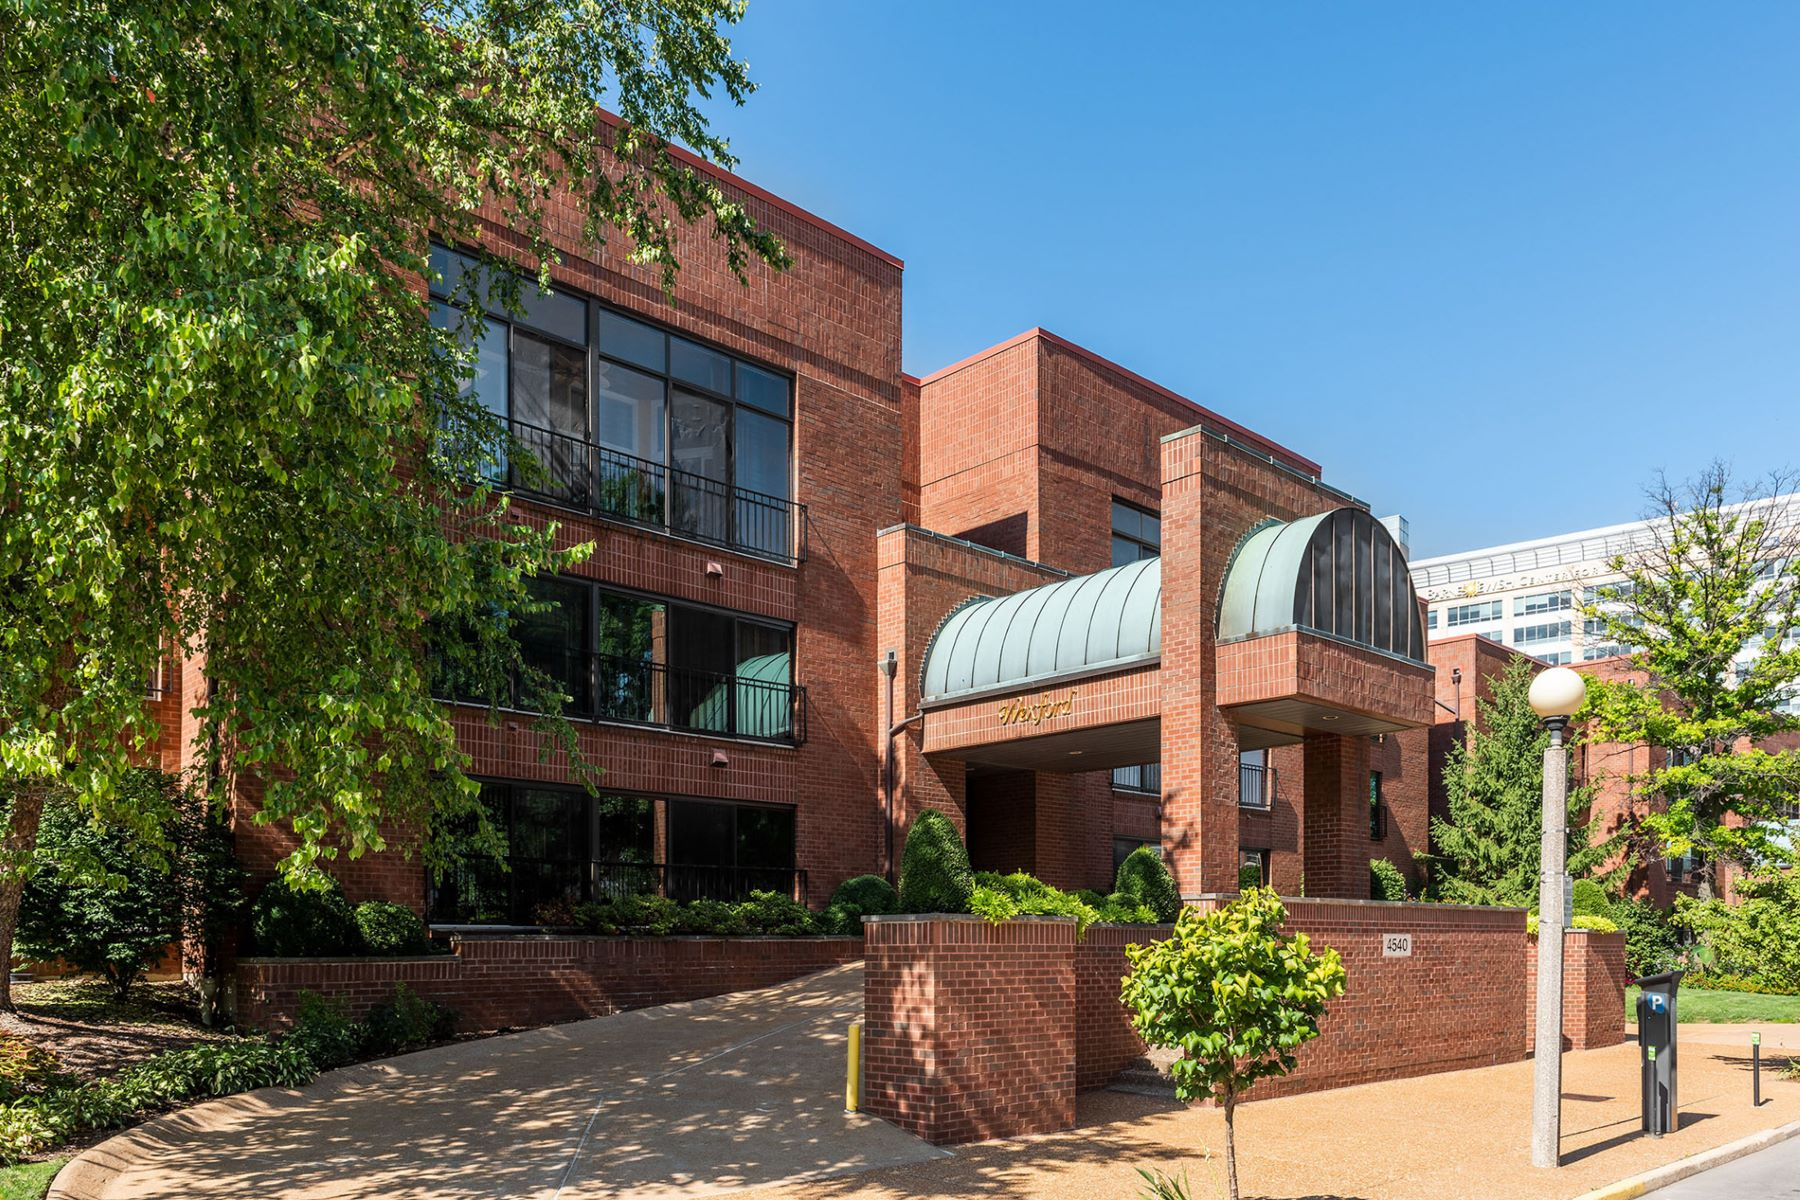 Property for Sale at Laclede Ave 4540 Laclede Ave # 204 St. Louis, Missouri 63108 United States